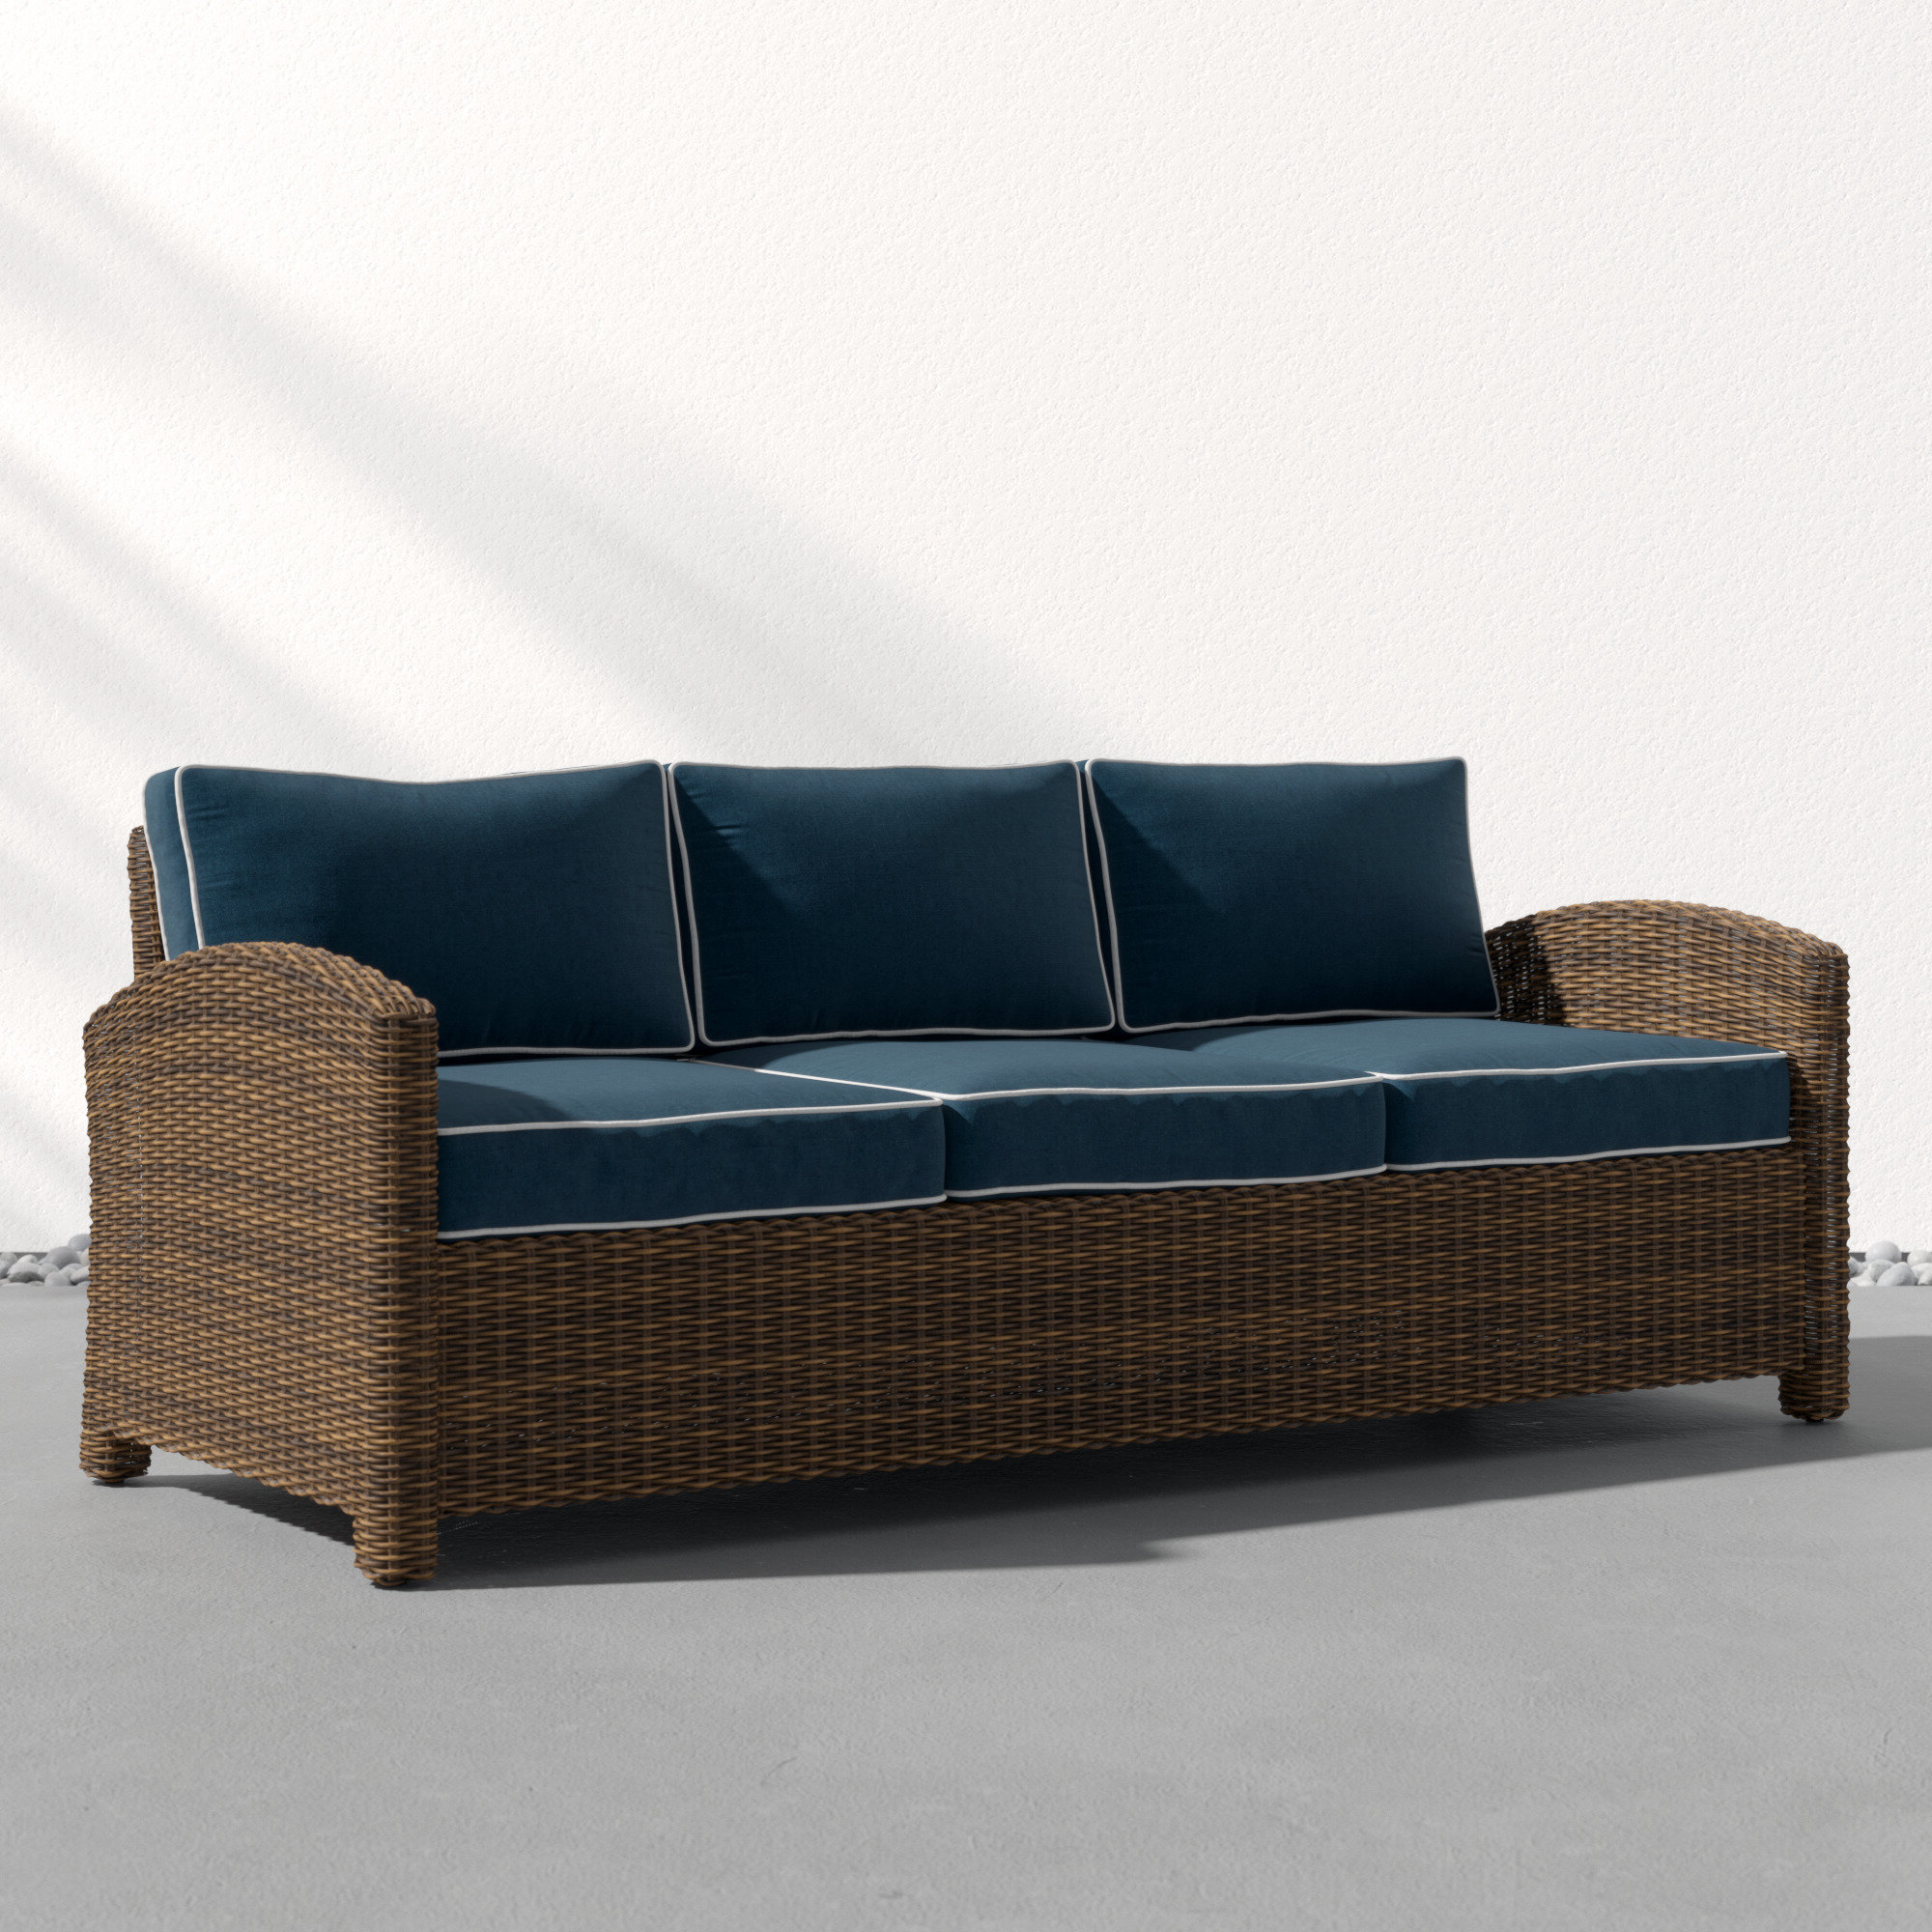 Modern Outdoor Sofas (View 13 of 20)